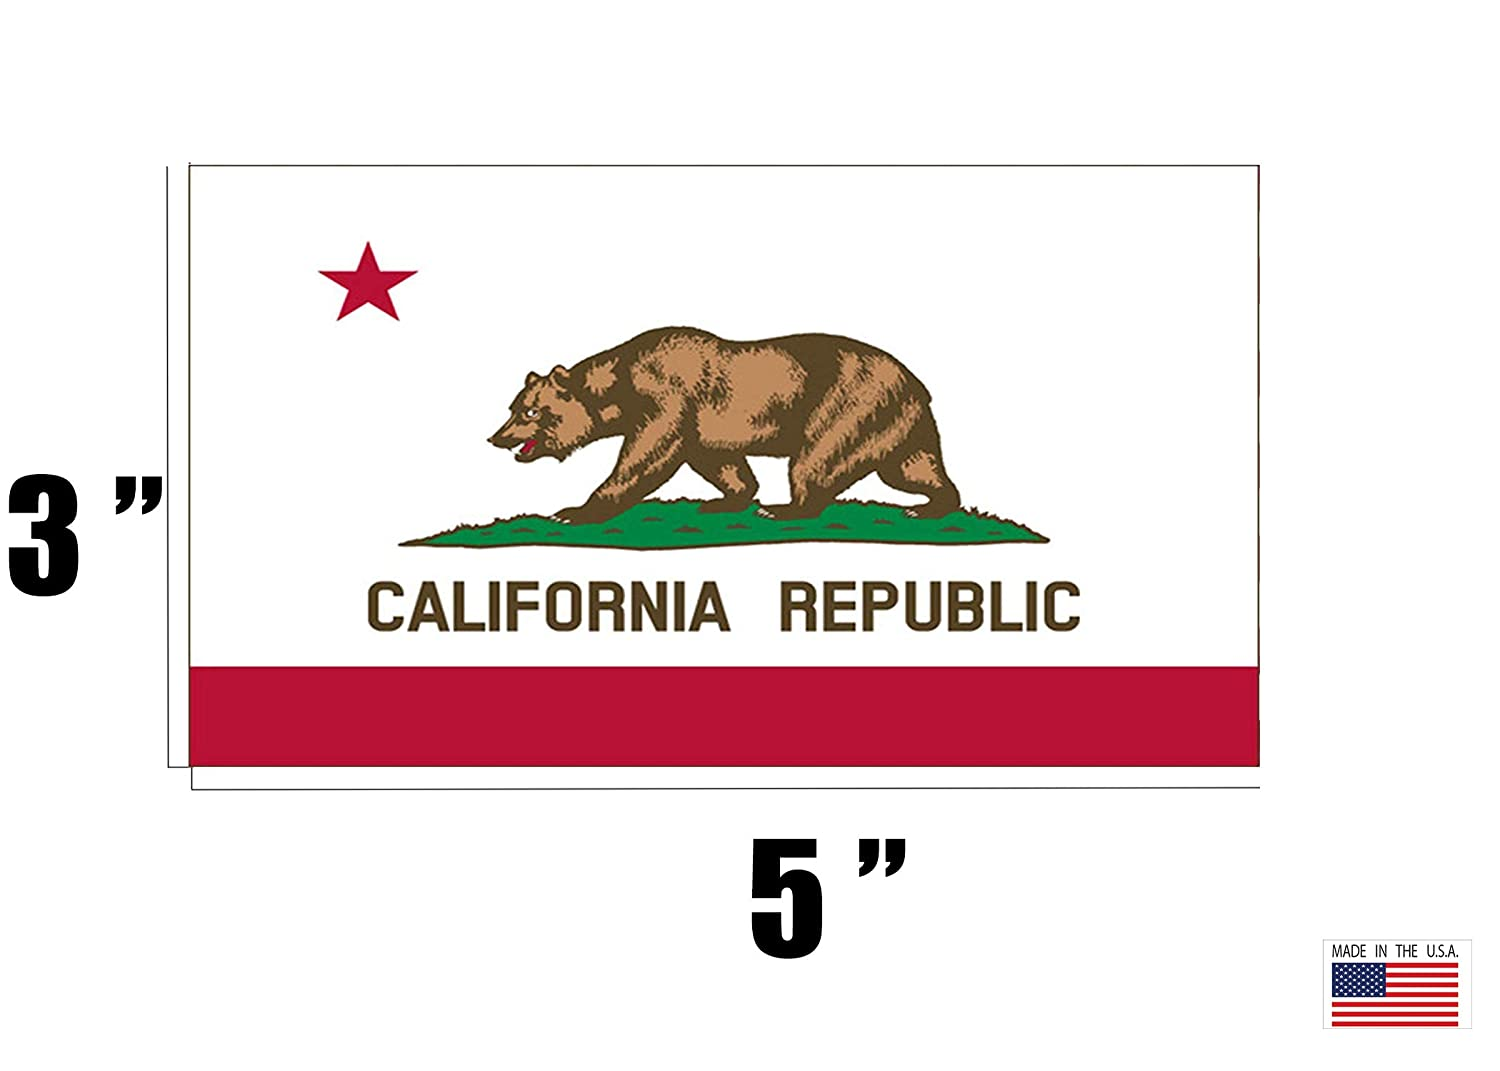 Rogue River Tactical California CA Republic State Flag Auto Decal Bumper Sticker Car Truck Boat RV Window